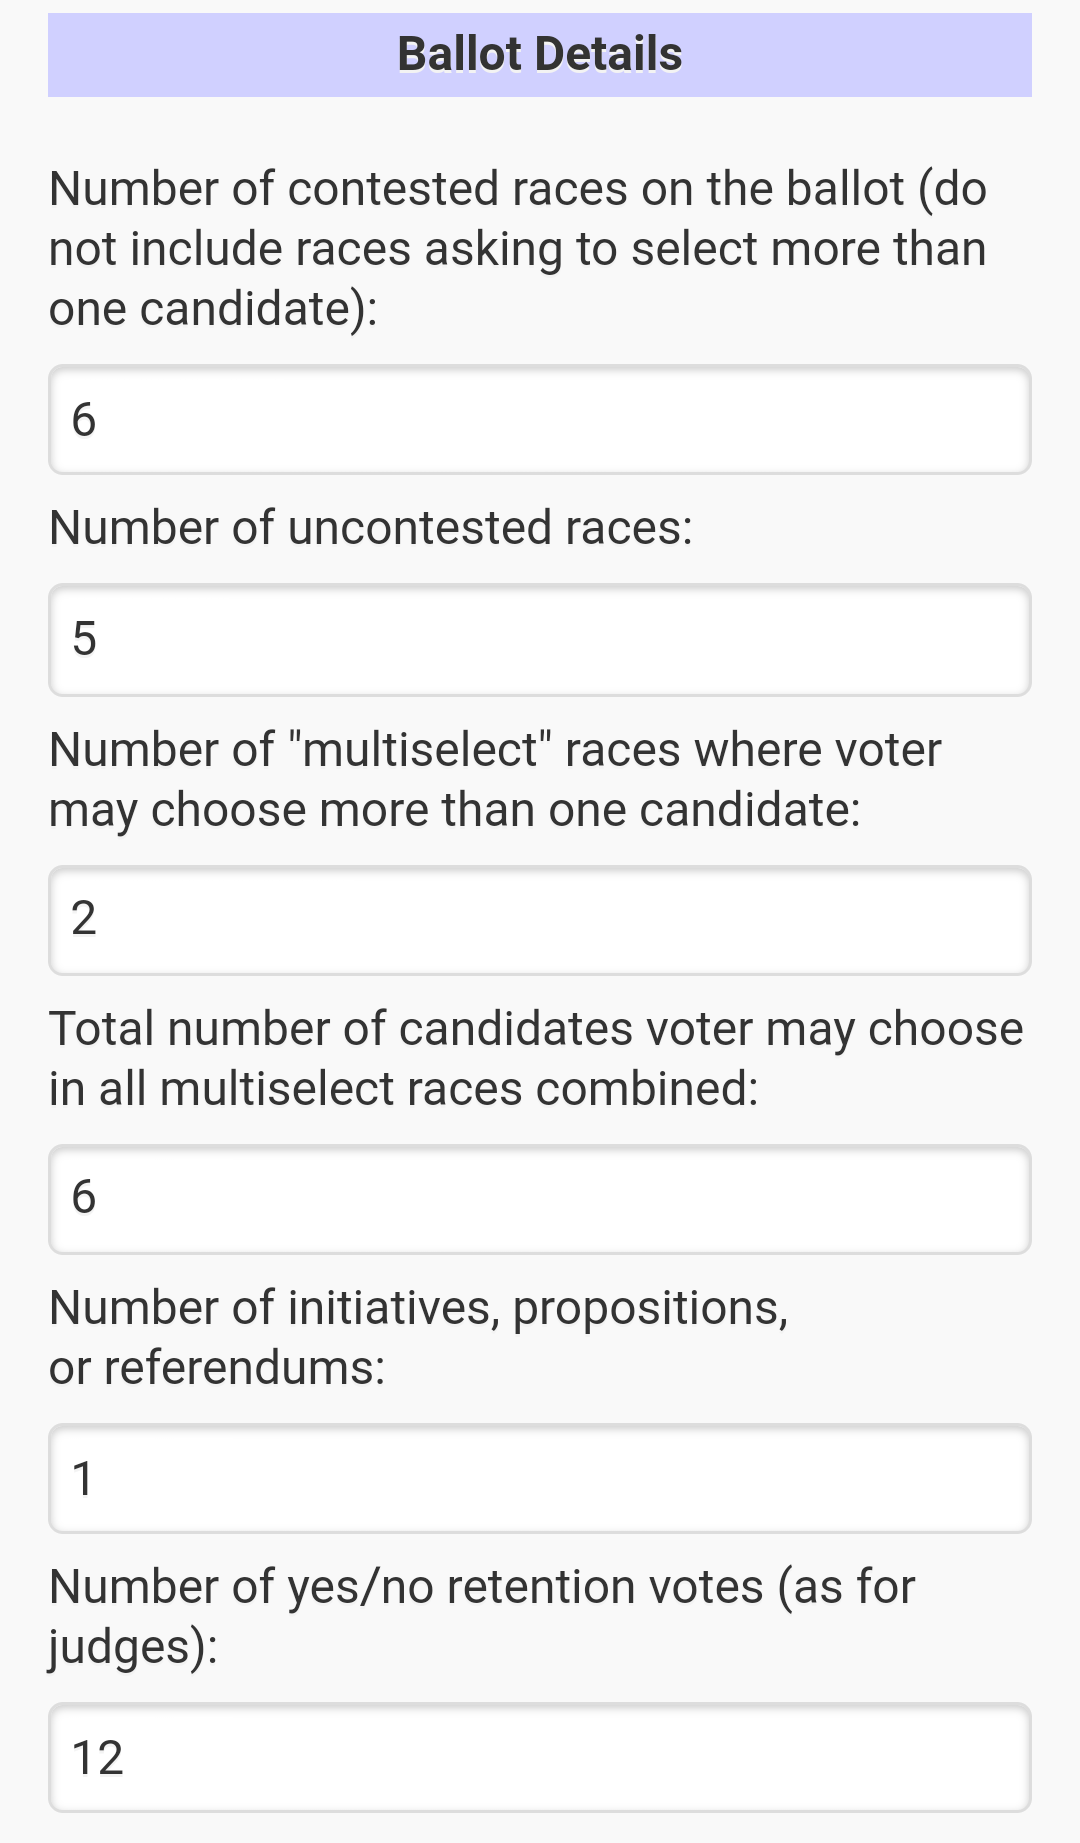 A user has entered numbers of the different ballot prompts